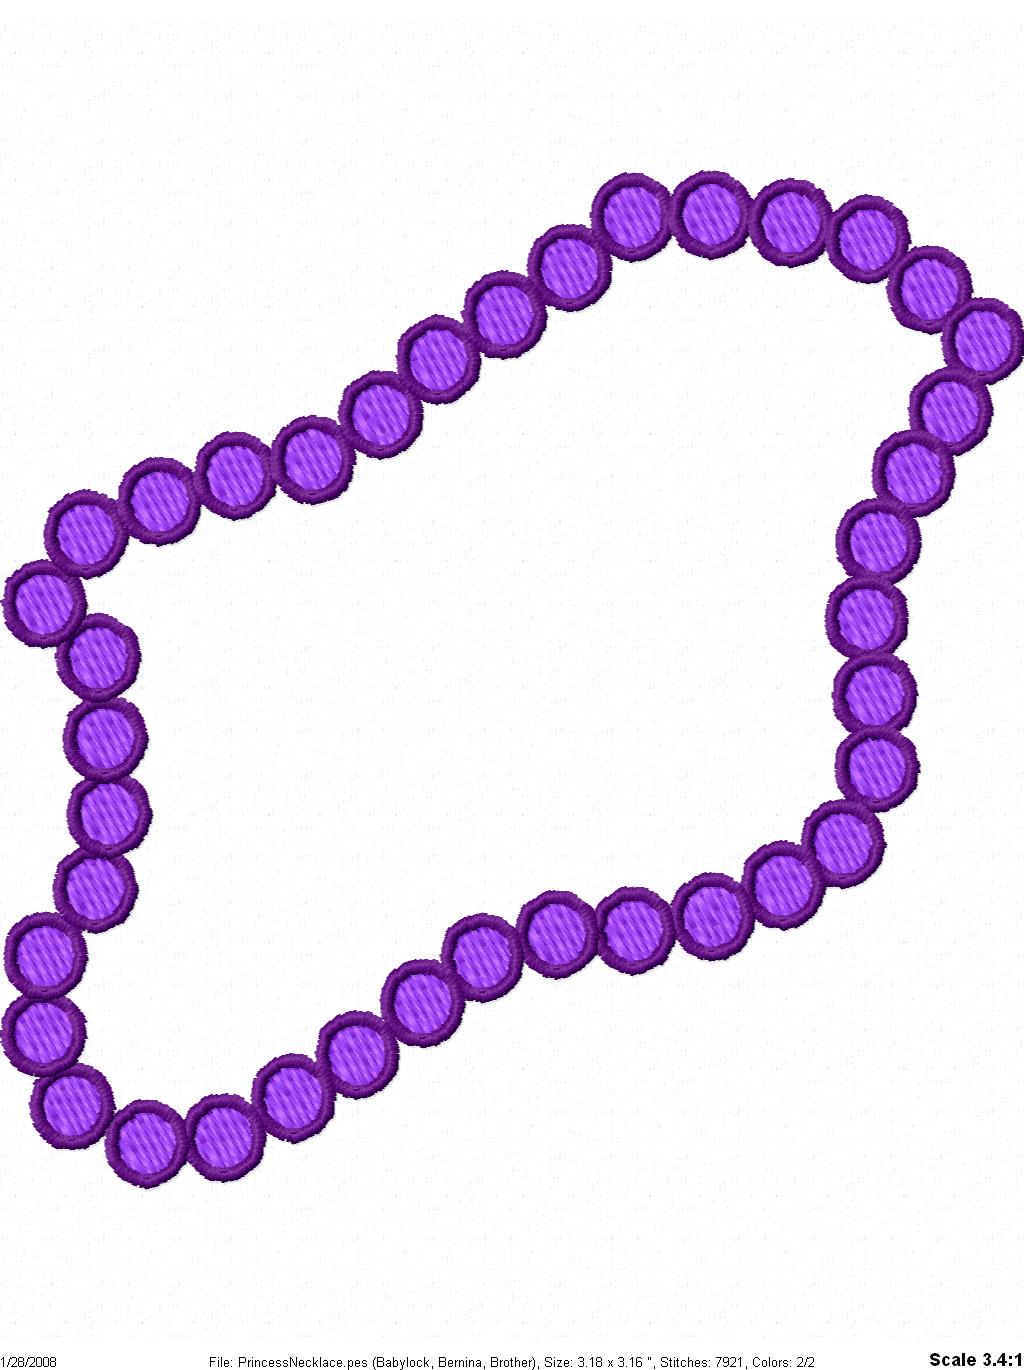 Necklace clipart jewelry #3